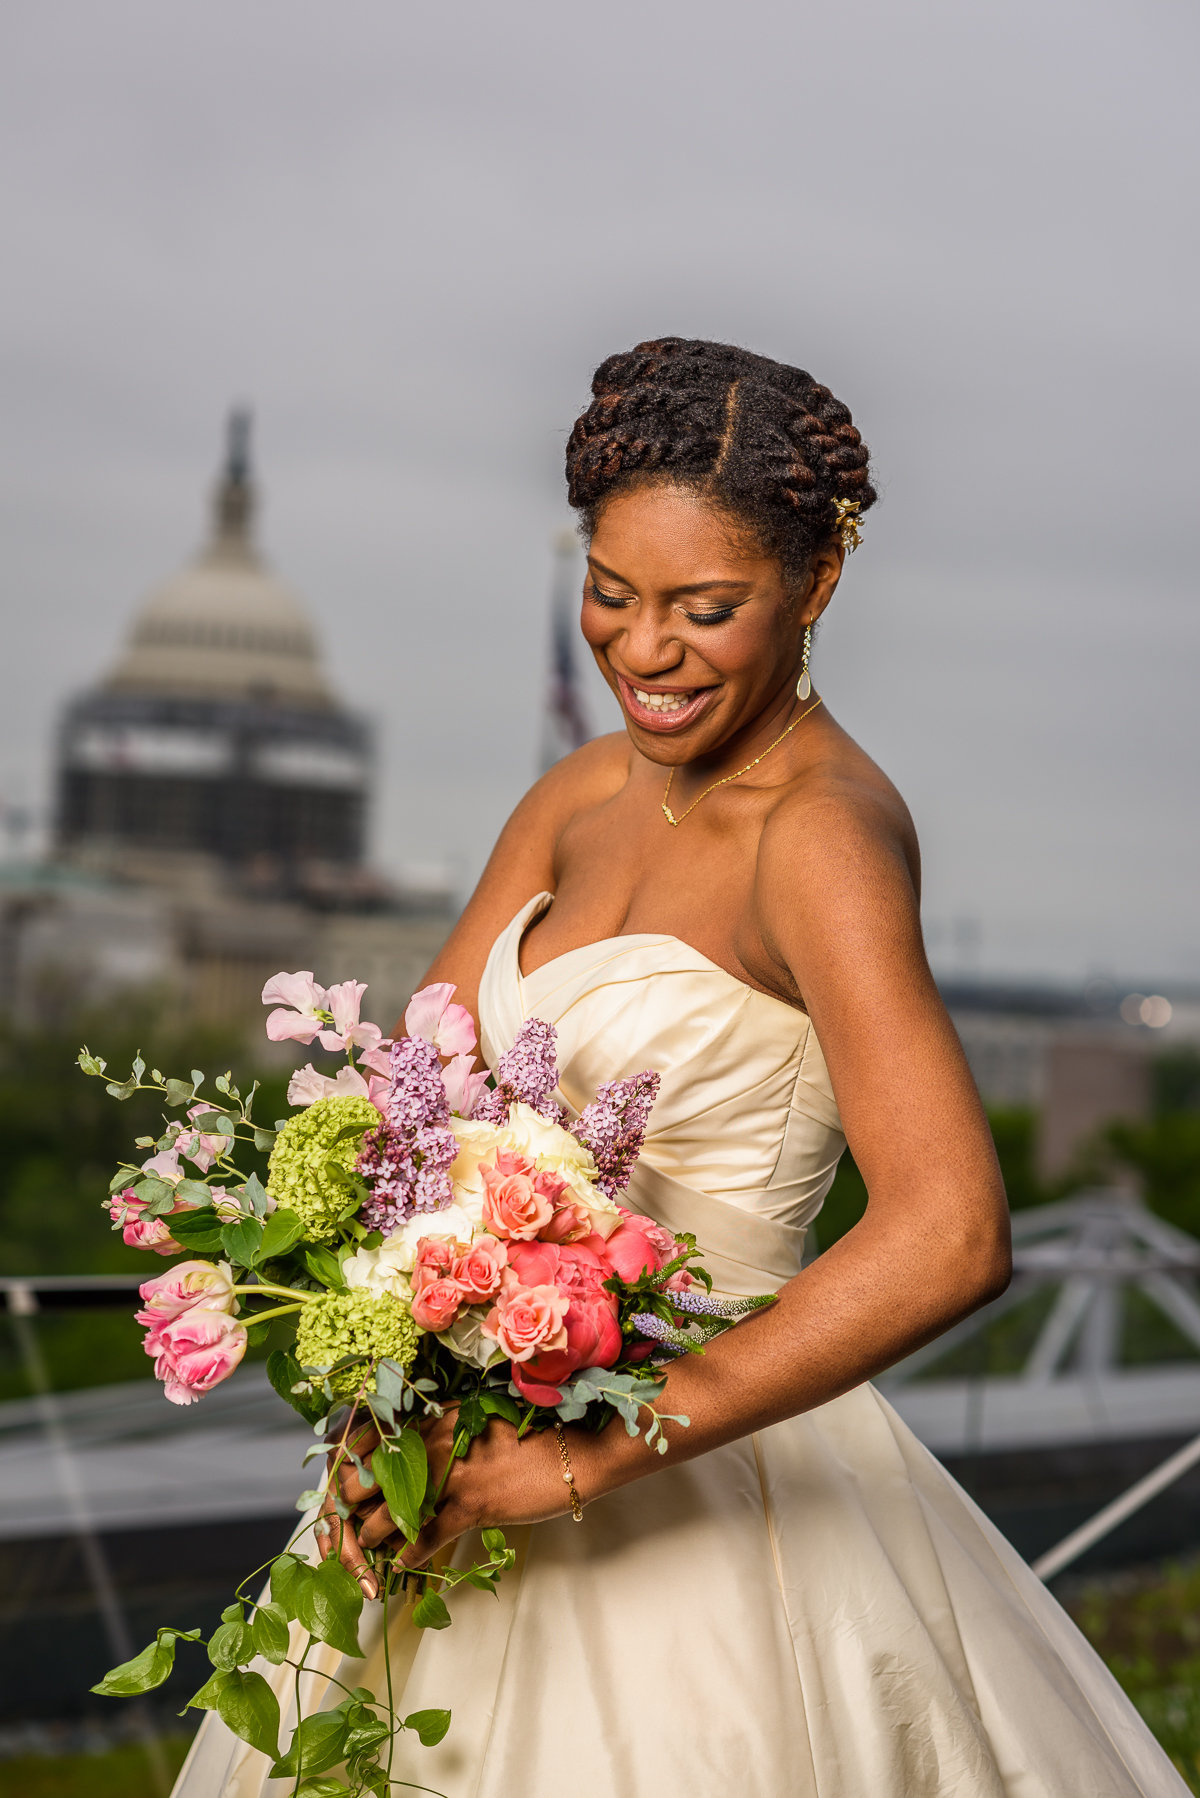 bridal_bellhop_wedding_event_bridal_portraits_4_27_16-18.jpg